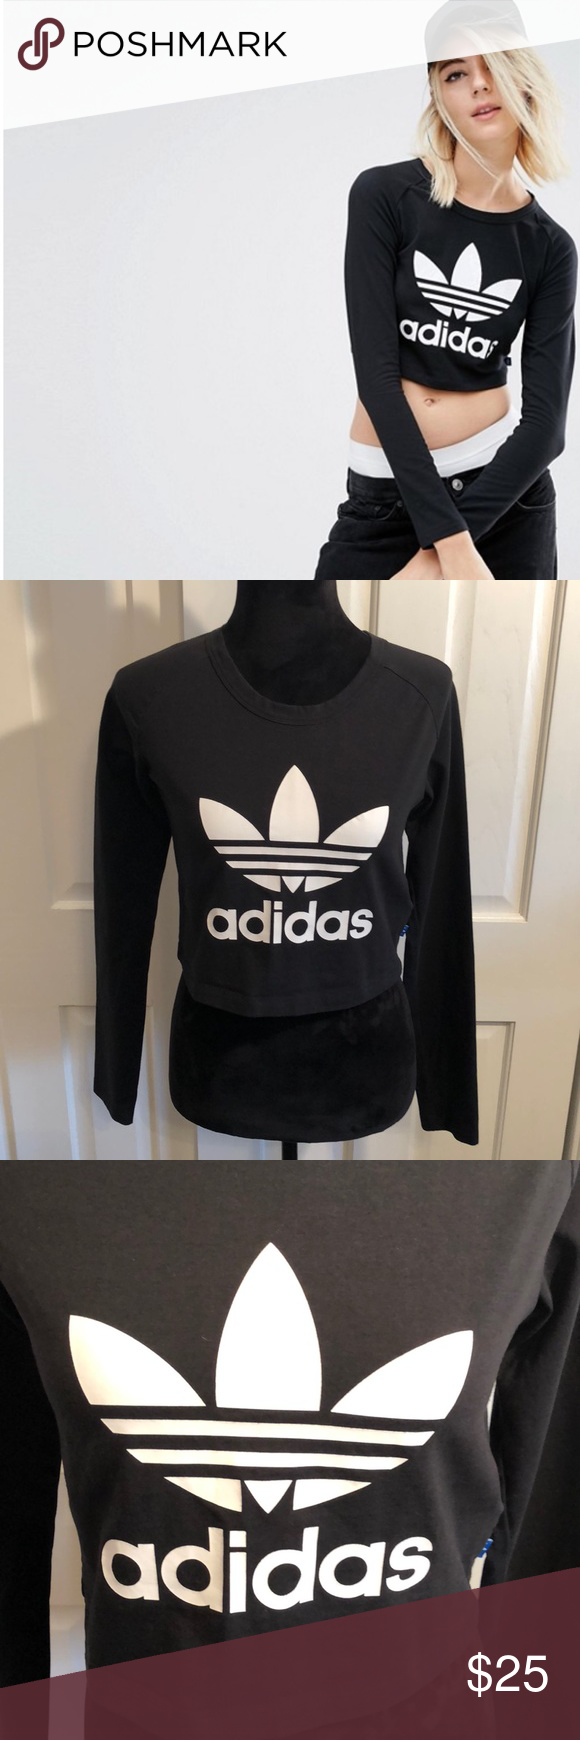 a38b5c25c399a Adidas Originals Long Sleeve Crop Top Trefoil Logo adidas Originals Long  Sleeve Crop Top With Trefoil Logo Preowned like new condition adidas Tops  Tees ...